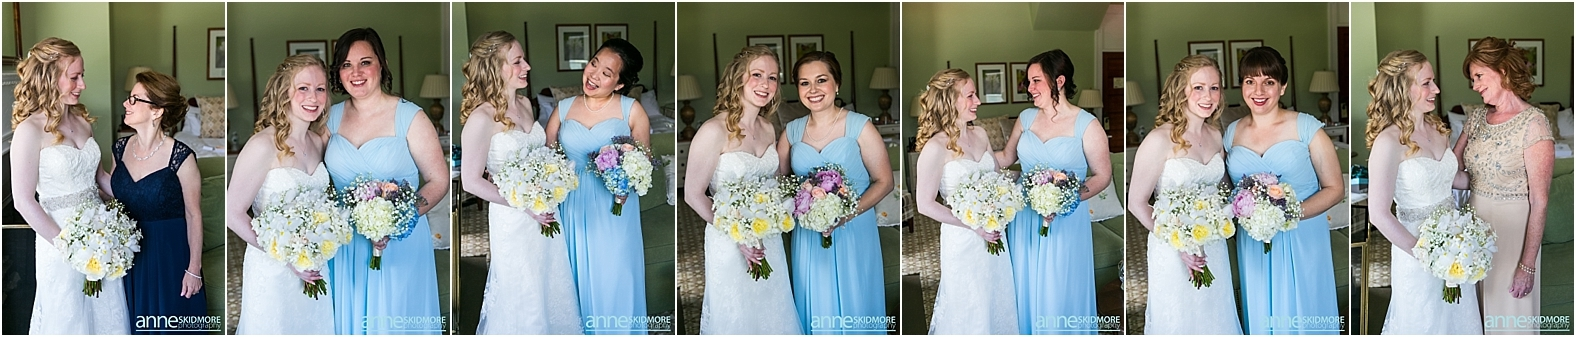 Mount_Washington_Hotel_Wedding_0014